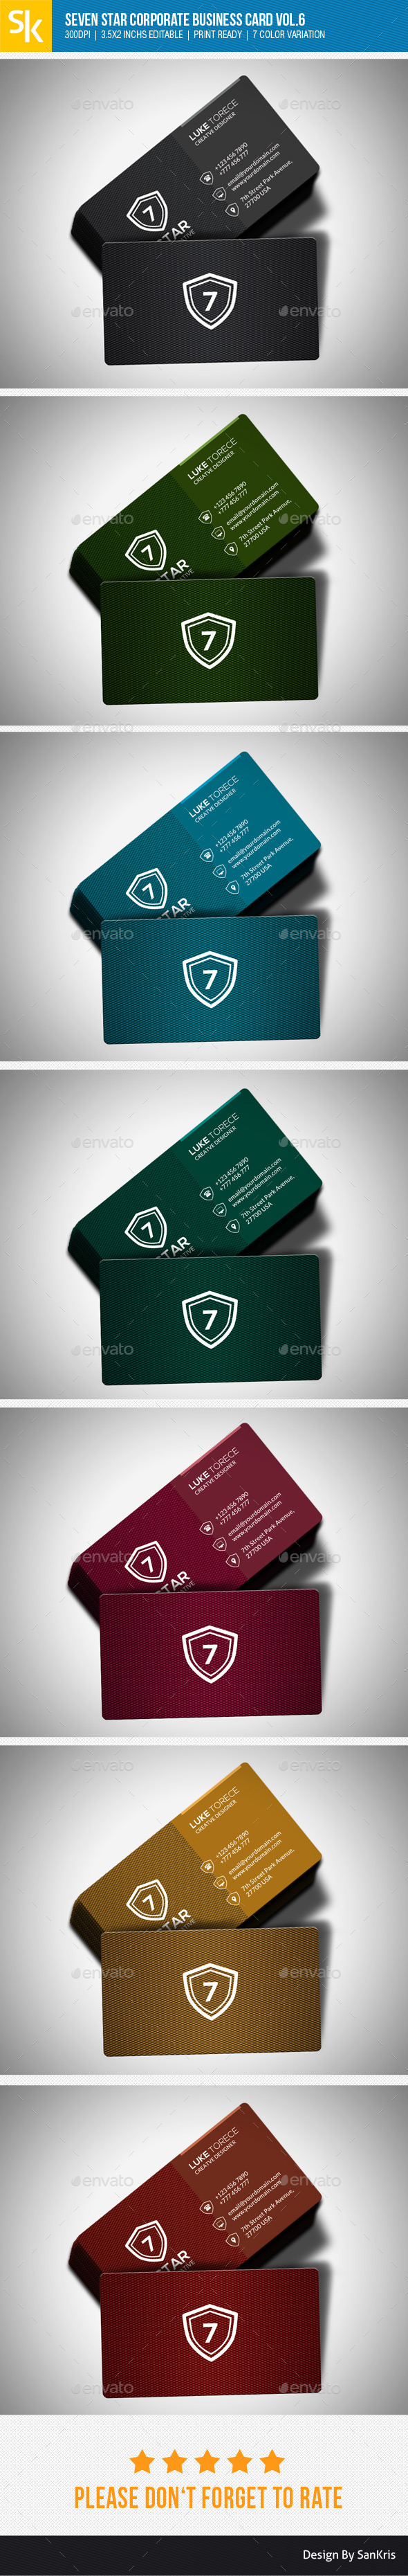 Seven Star Corporate Business Card Vol.6 - Corporate Business Cards